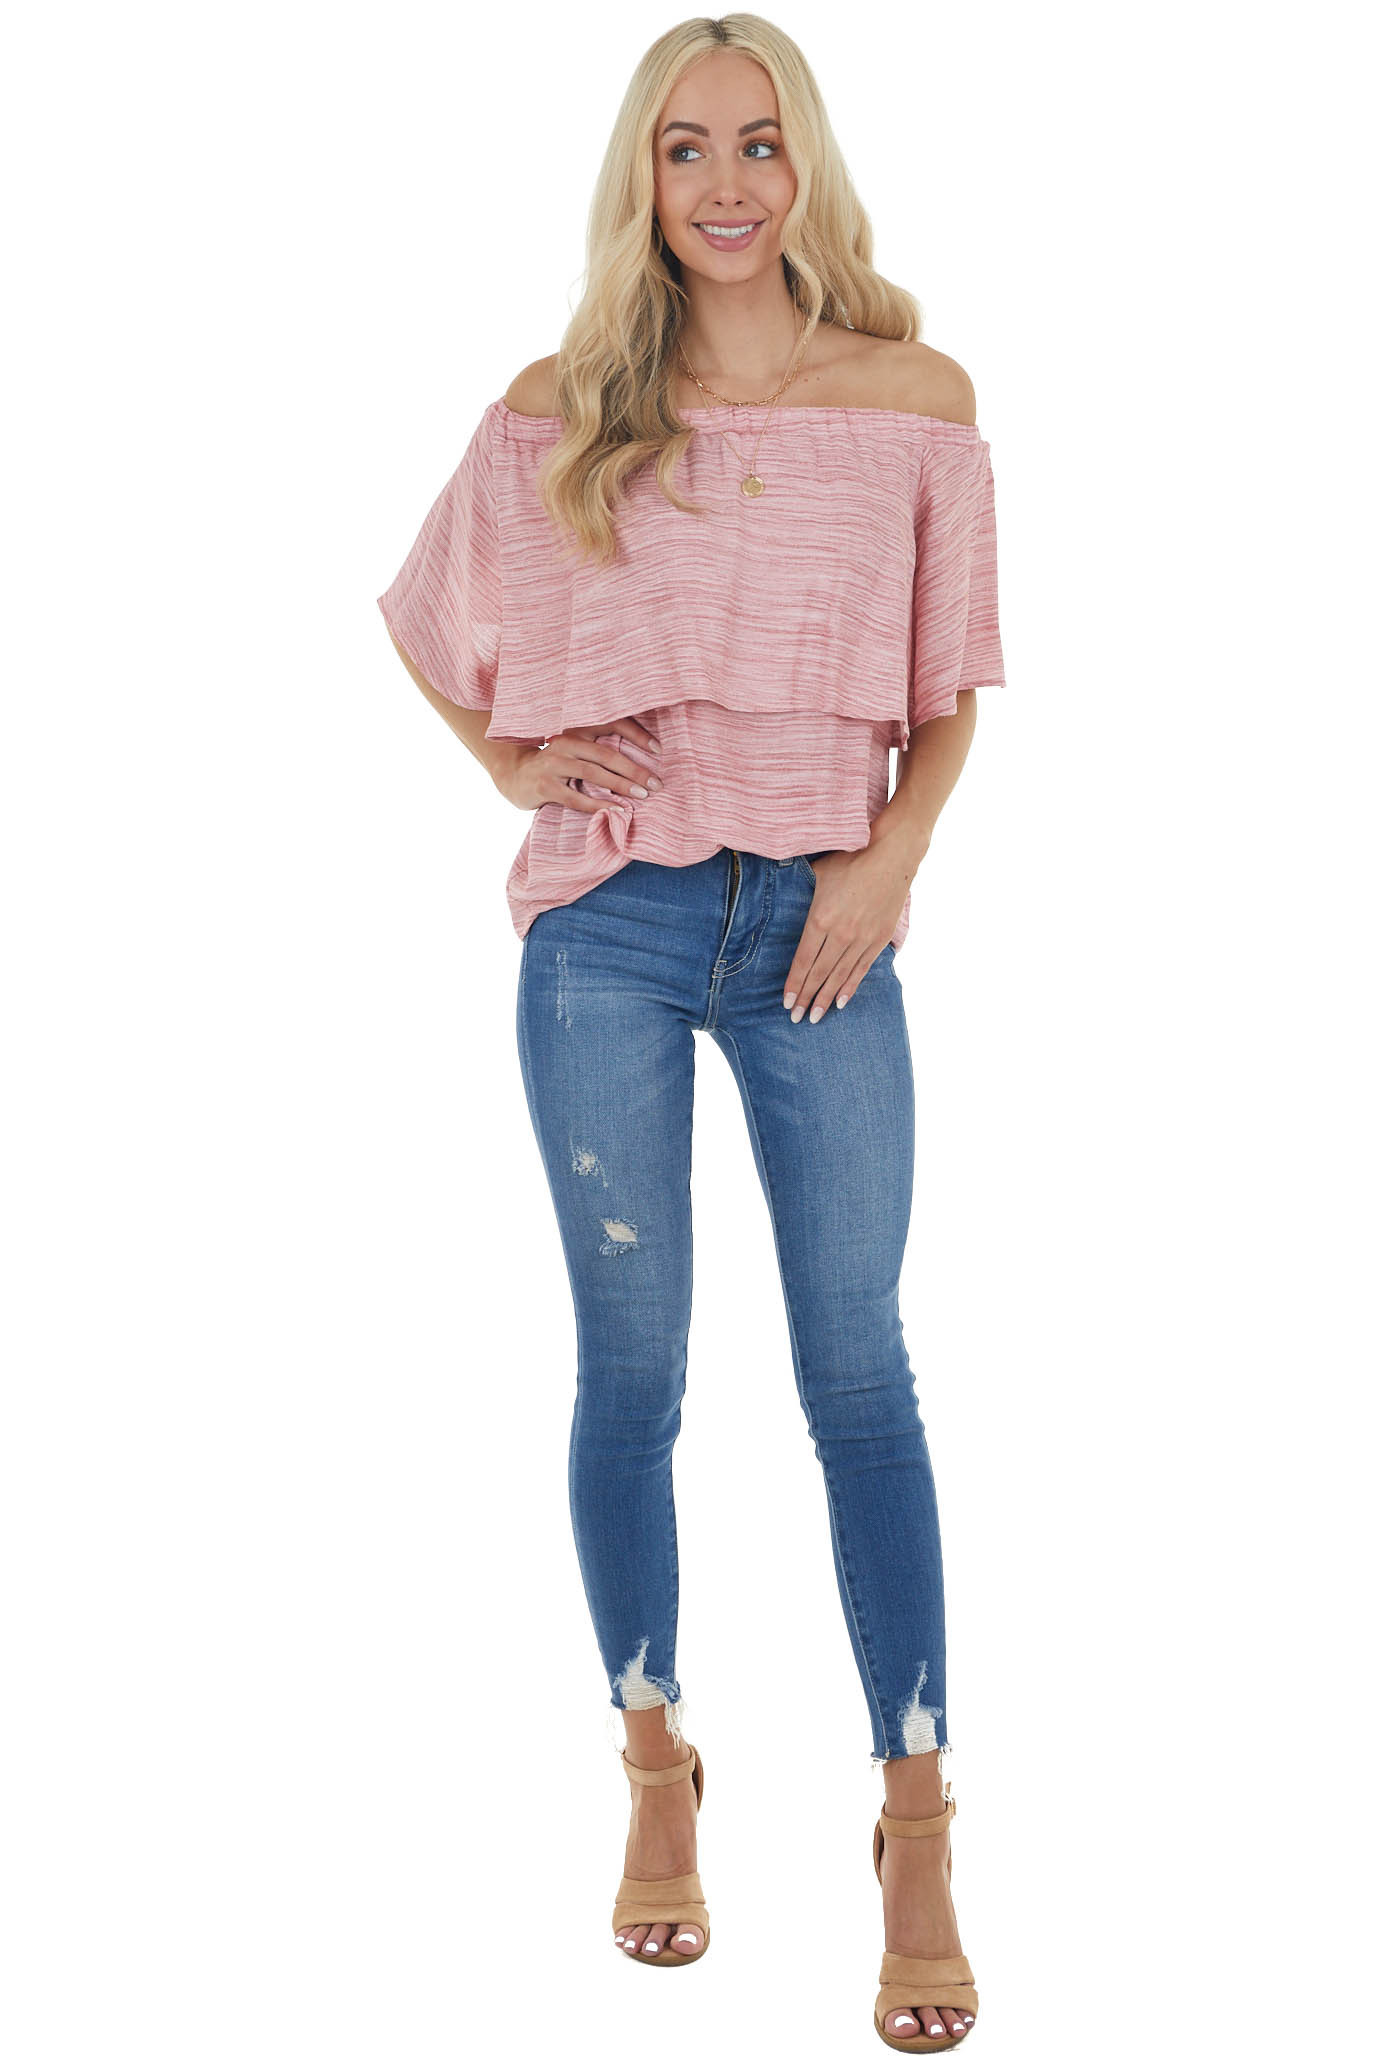 Carnation Pink Two Tone Off the Shoulder Woven Blouse